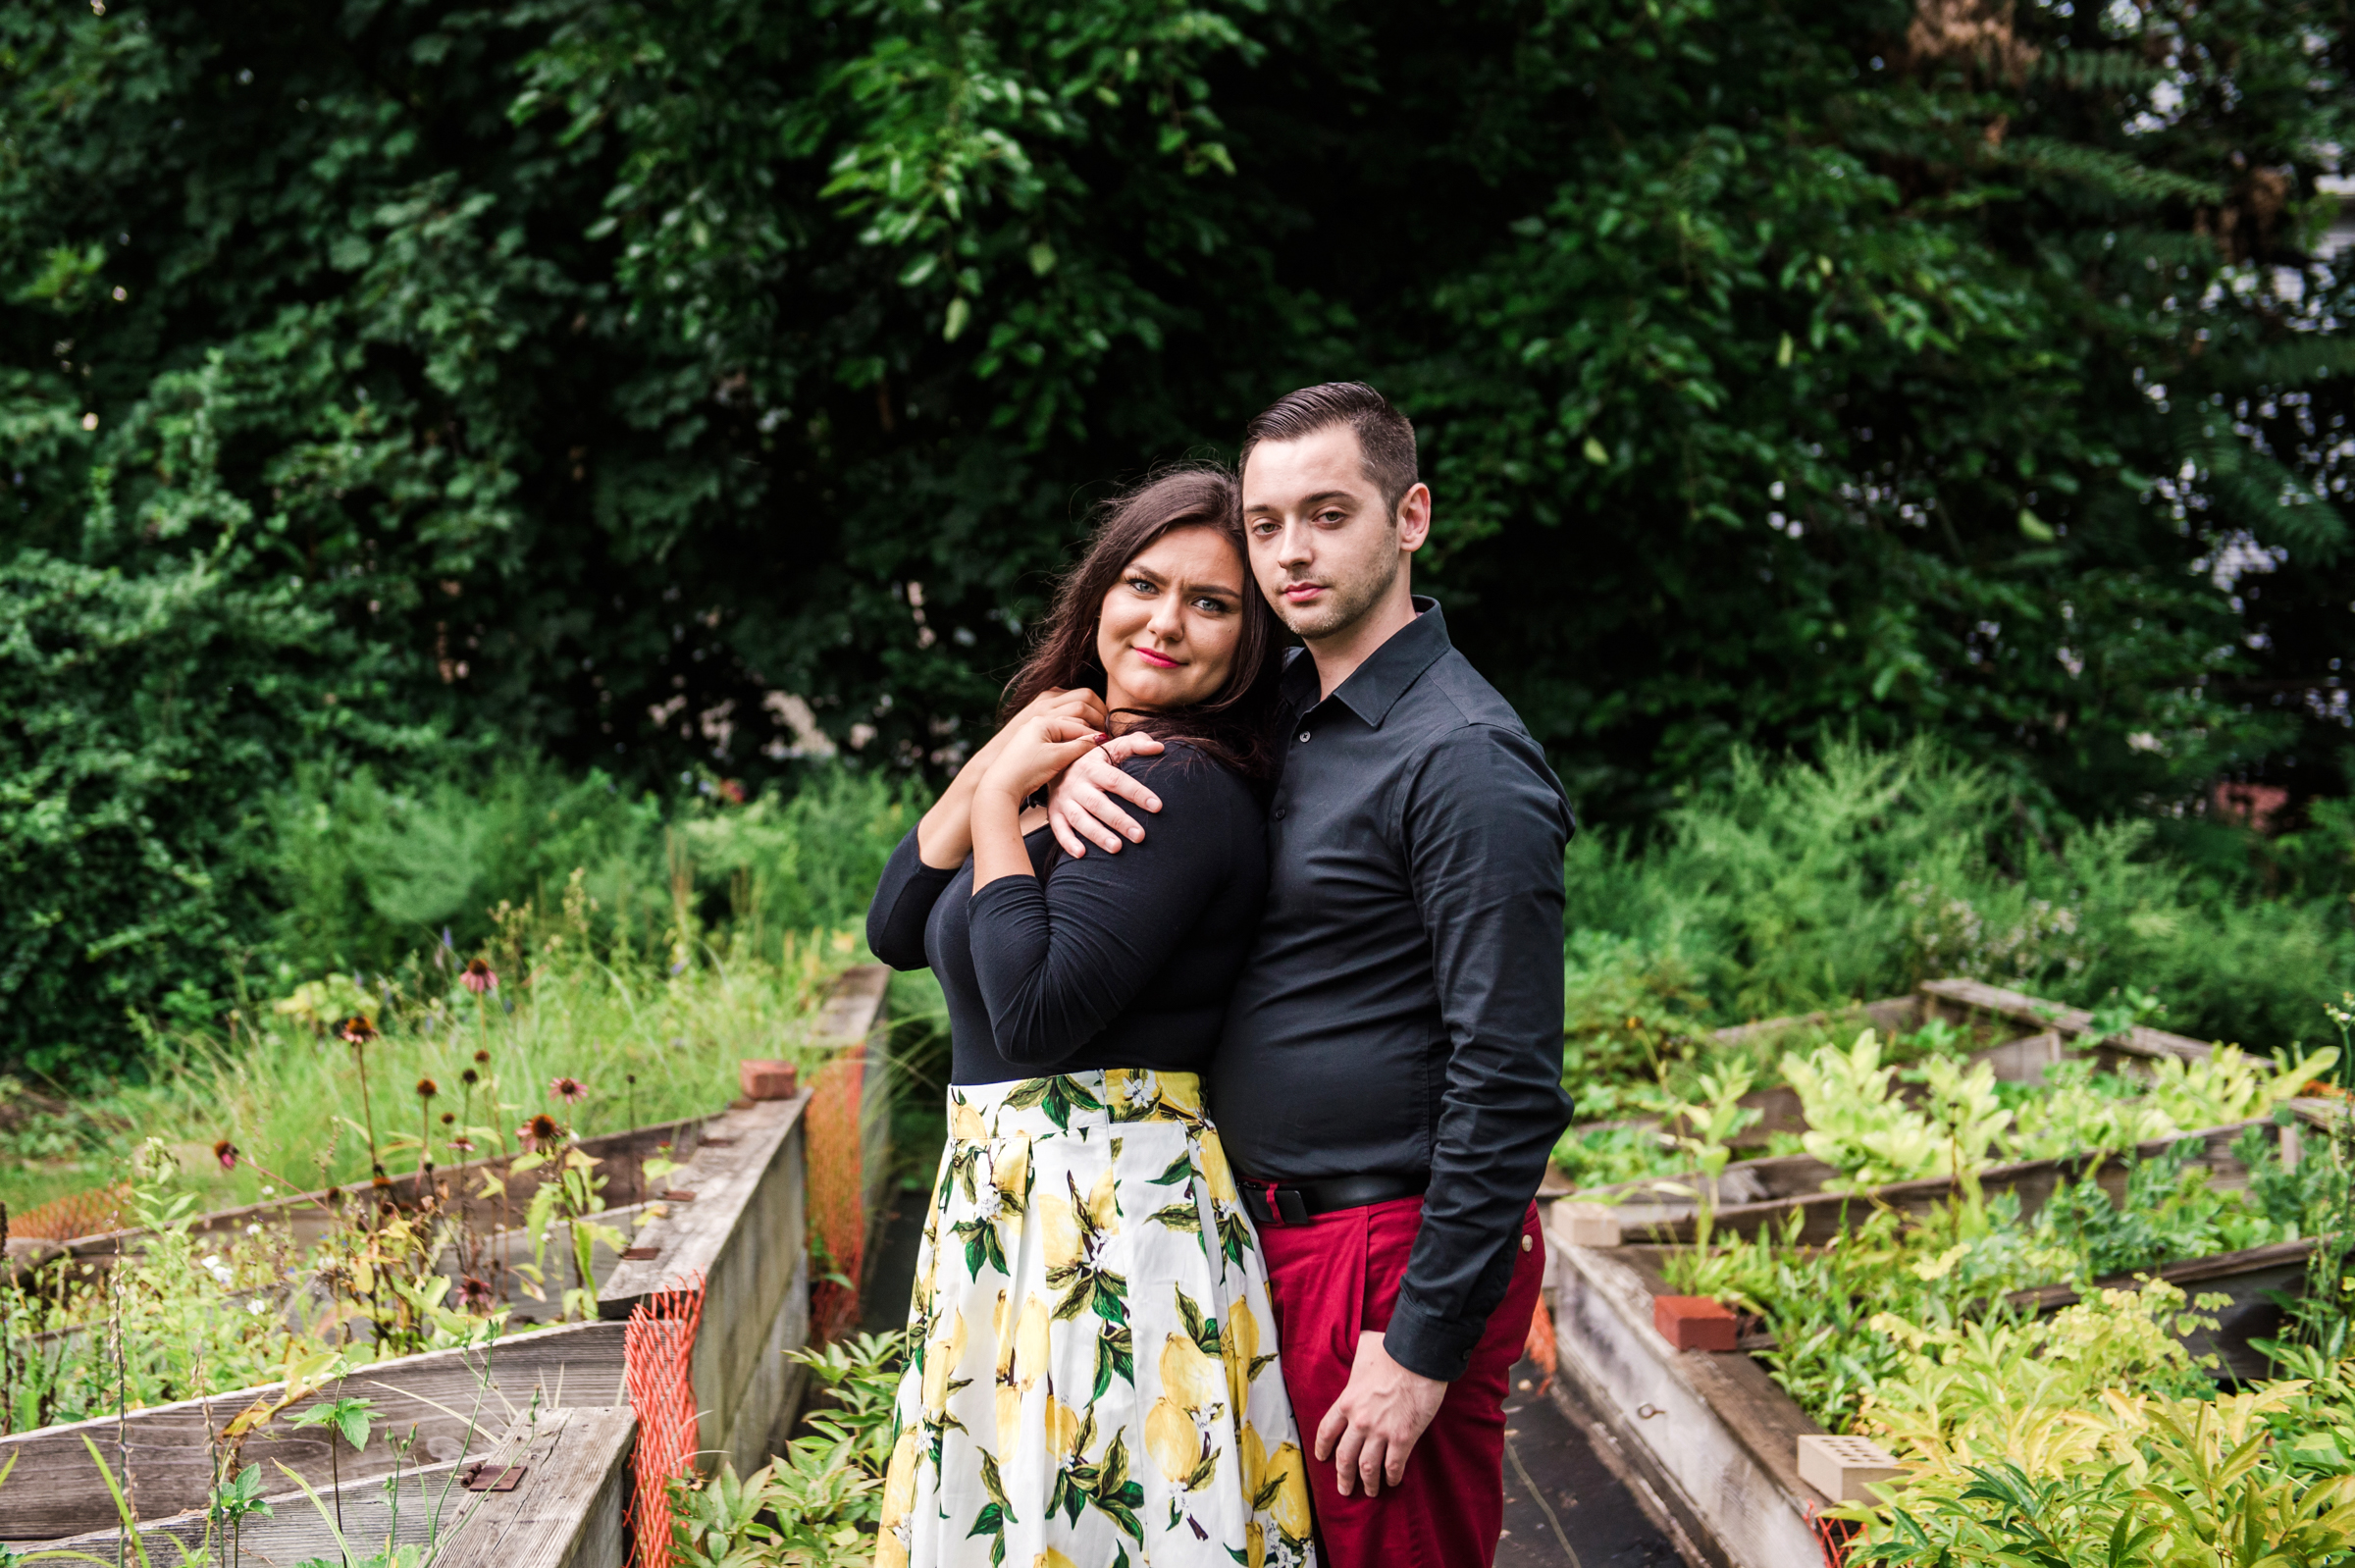 George_Eastman_House_Rochester_Engagement_Session_JILL_STUDIO_Rochester_NY_Photographer_DSC_6446.jpg